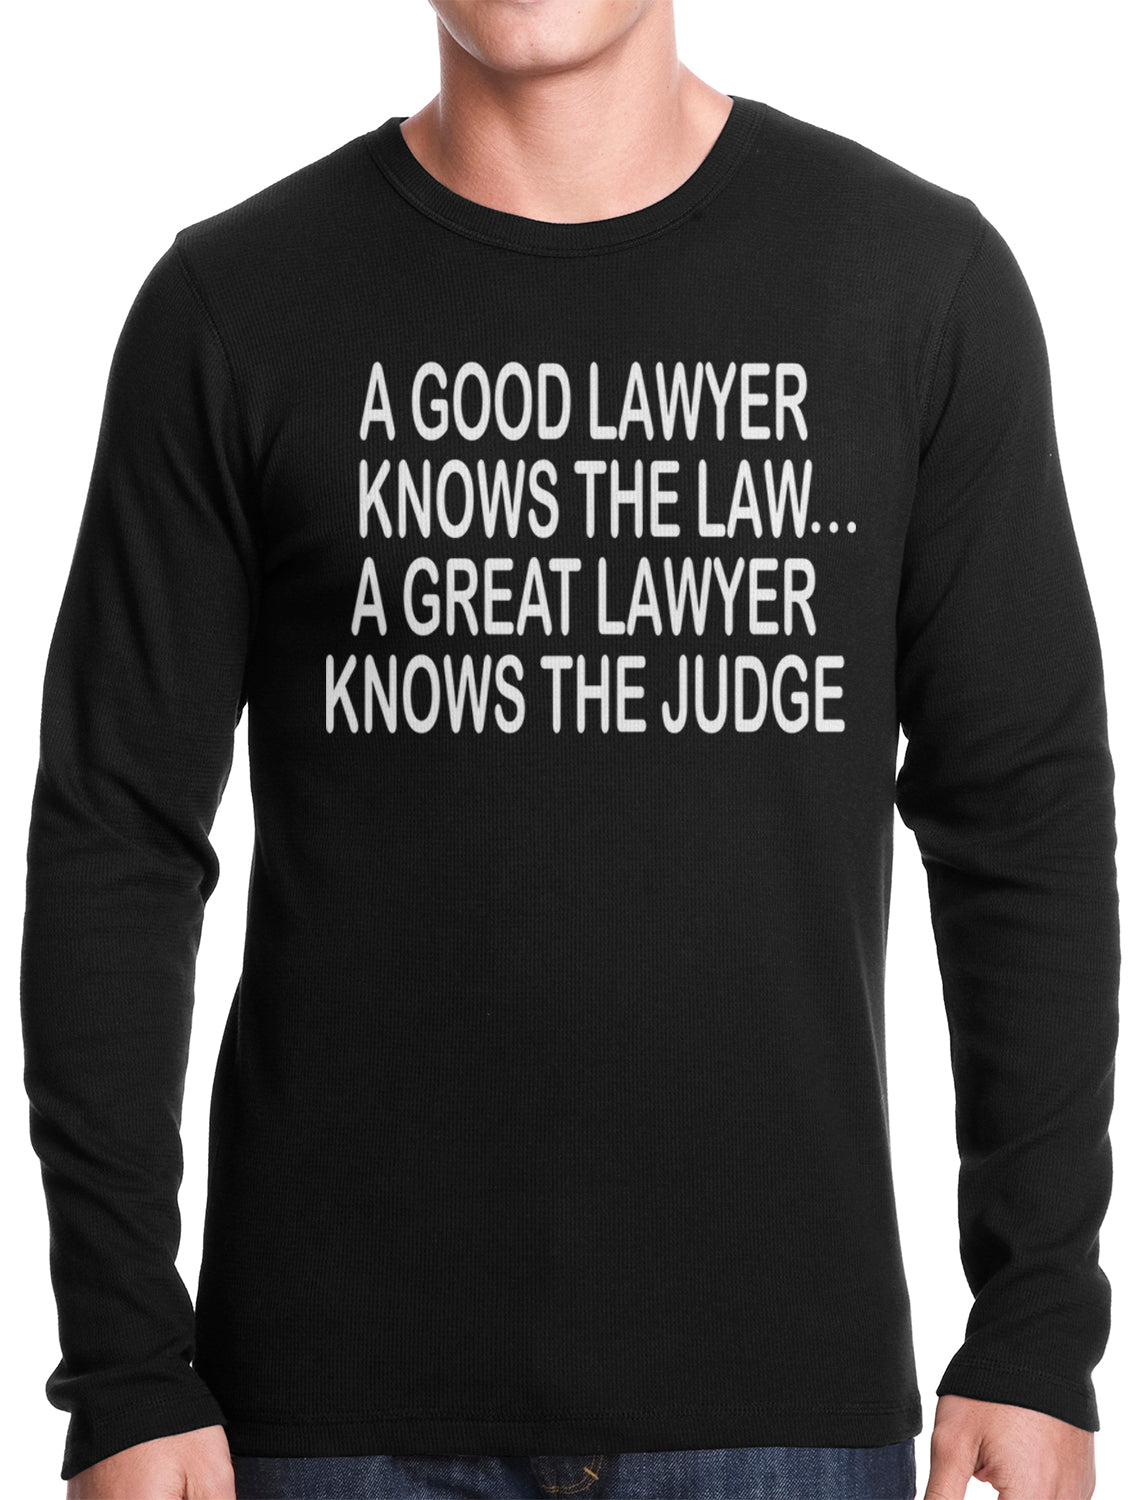 A Good Lawyer Thermal Shirt